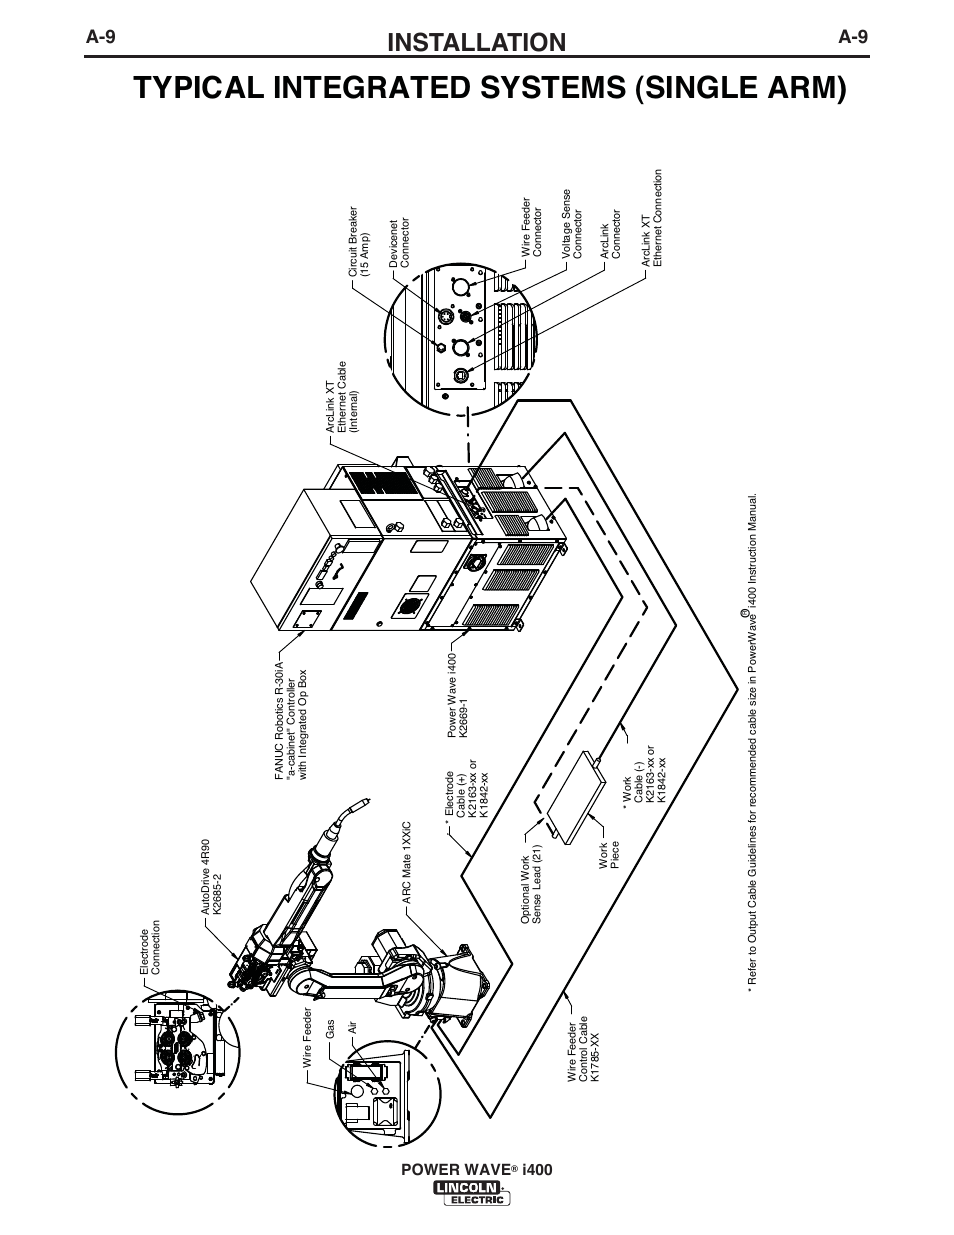 Typical integrated systems (single arm), Installation